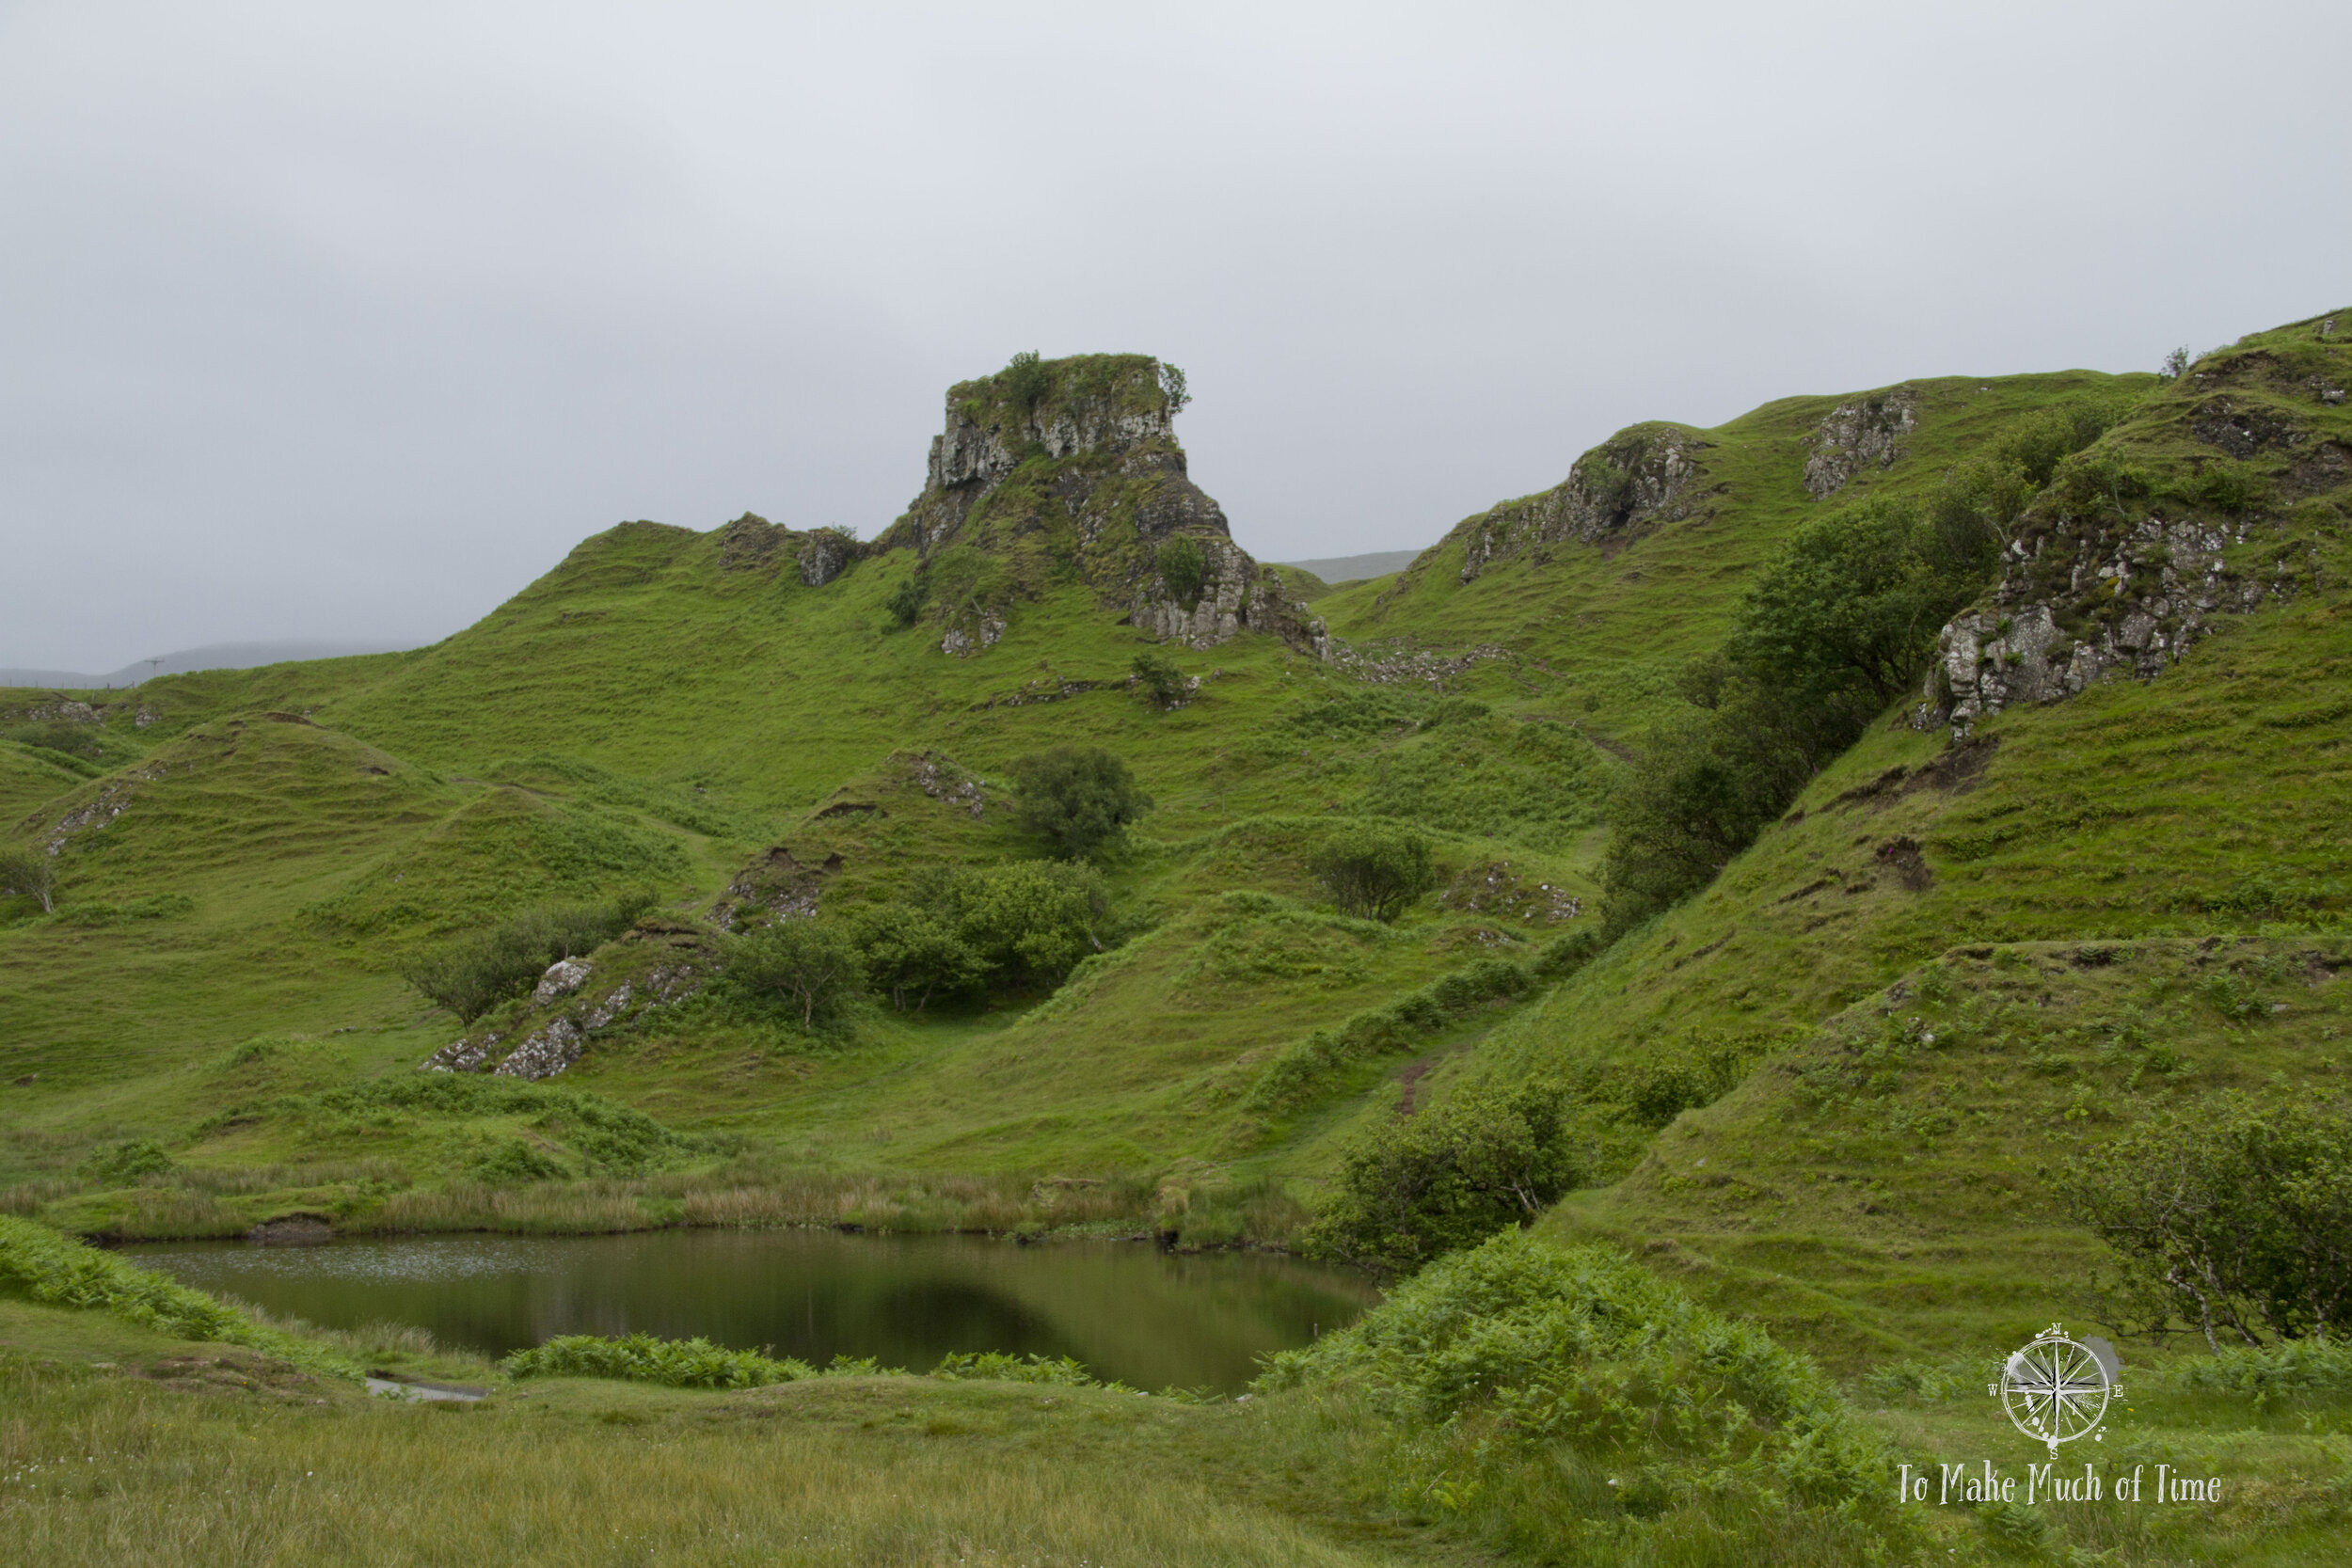 Fairy Glen is home to some amazing geology which provides a magical air. You can just imagine faeries living in a place like this.